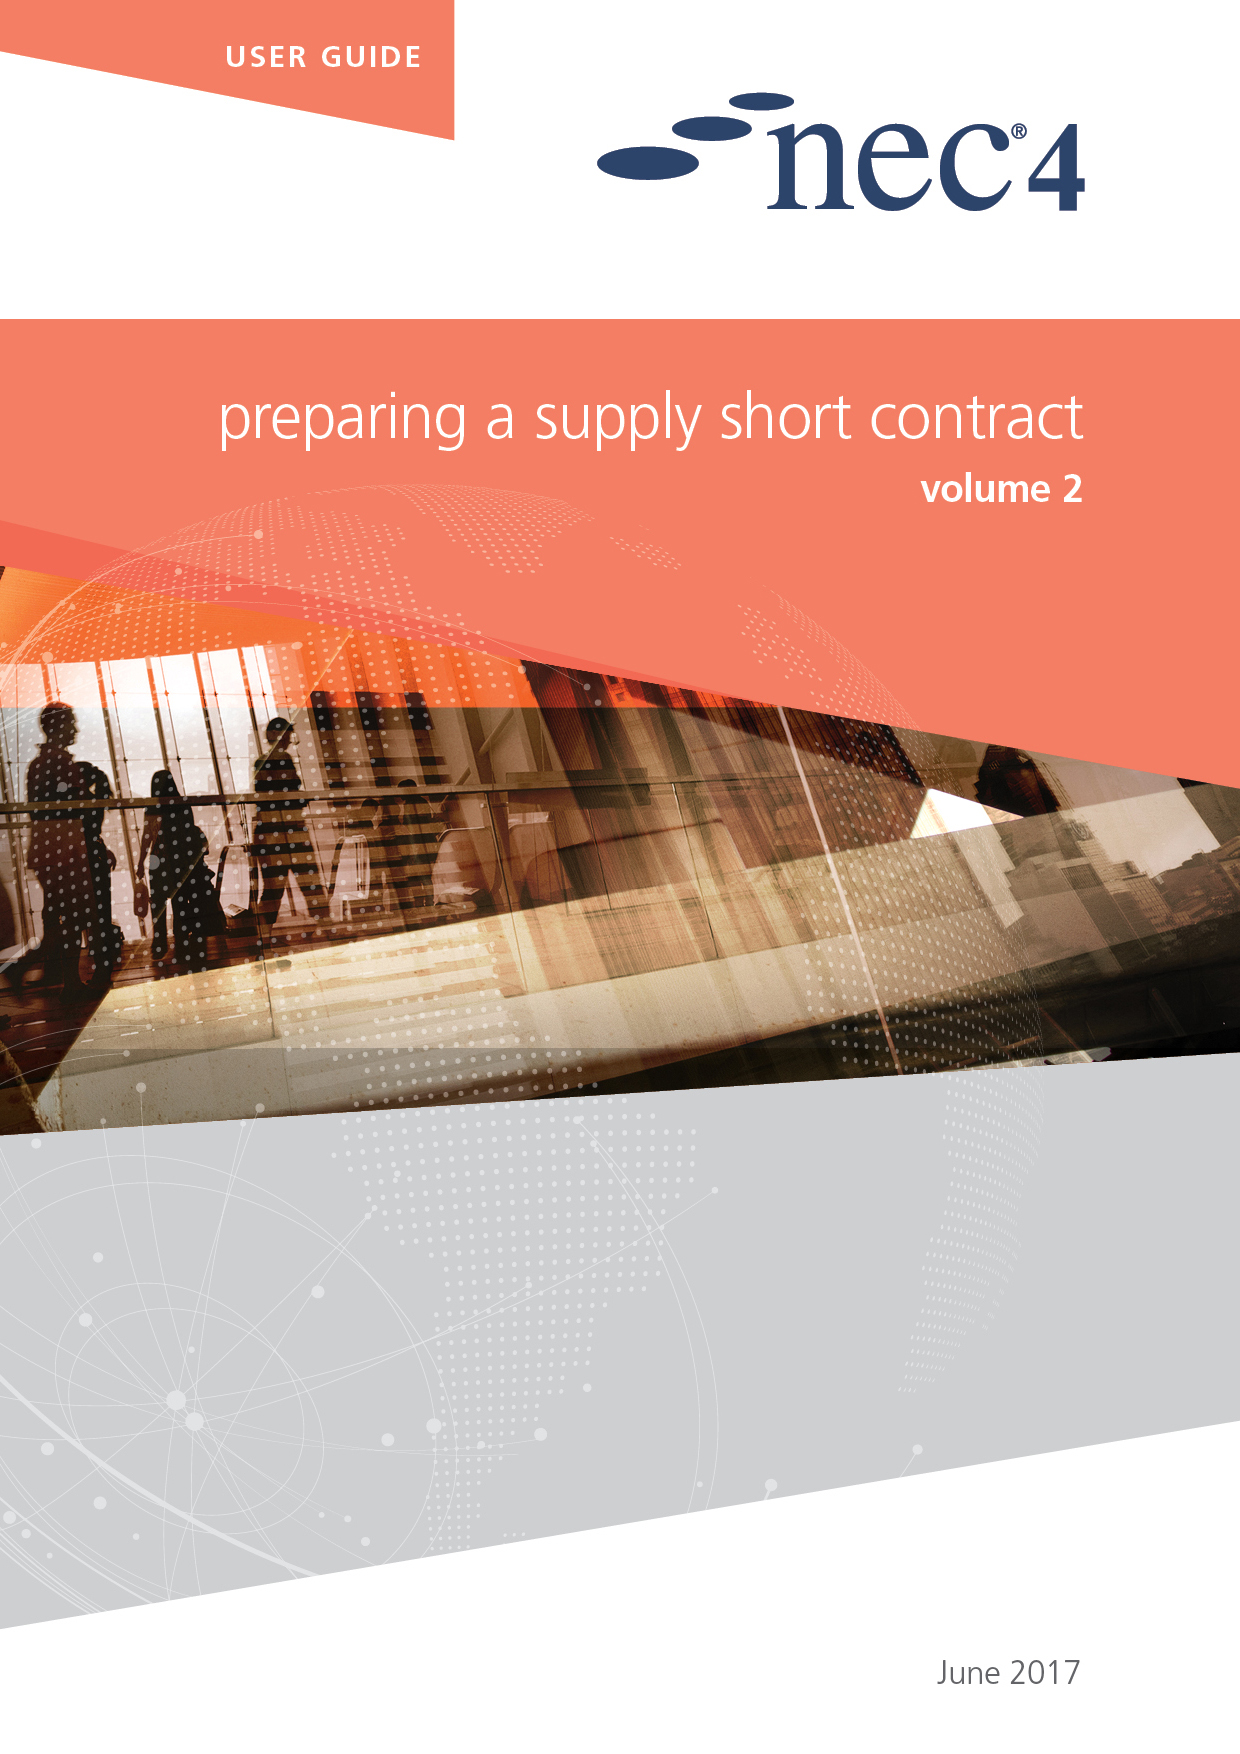 NEC4: Preparing a Supply Short Contract